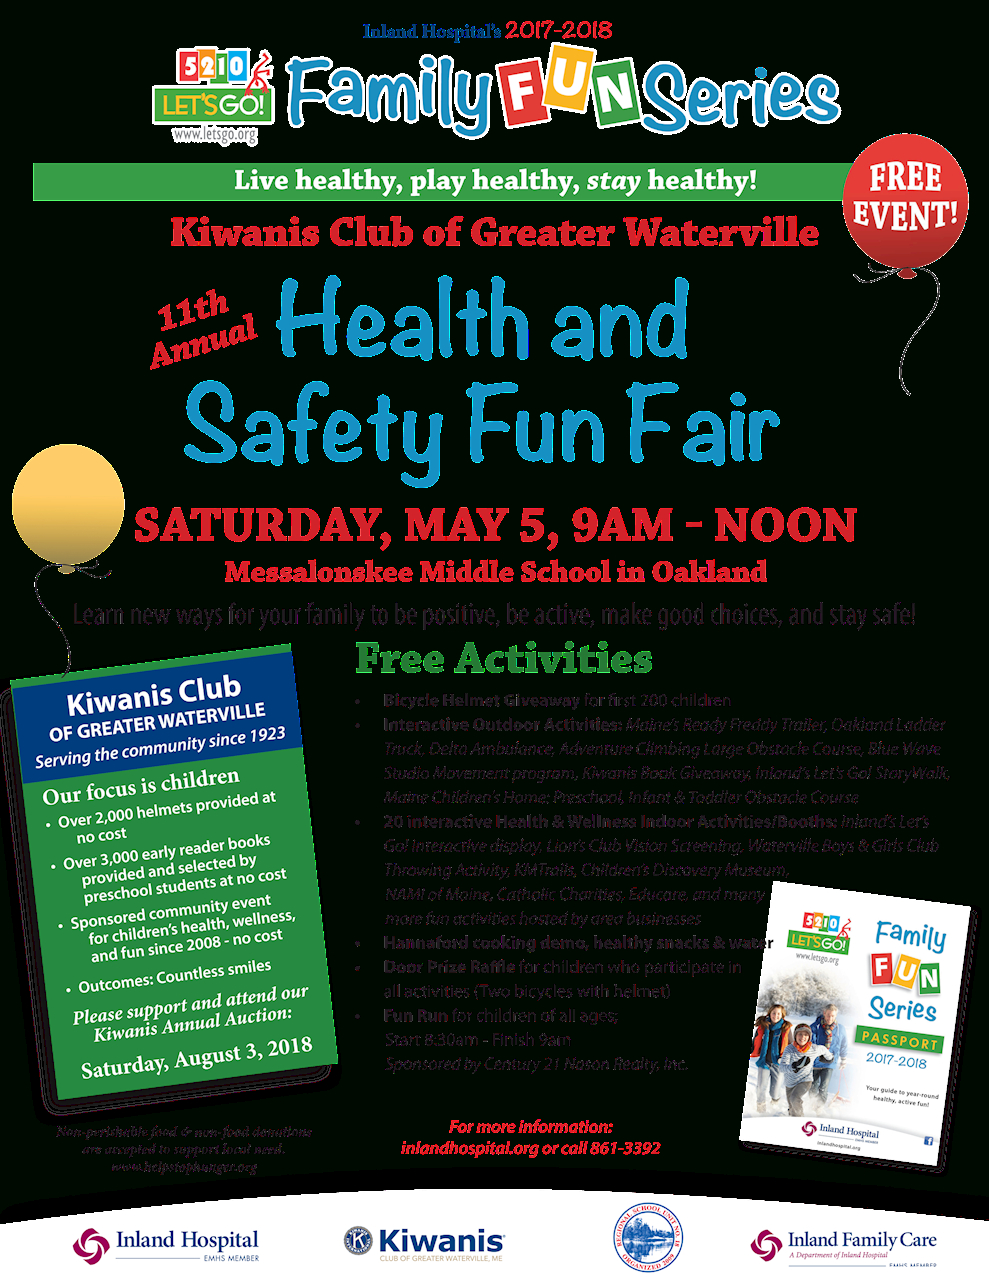 10 Cute Health And Safety Fair Ideas greater waterville kiwanis international 2021